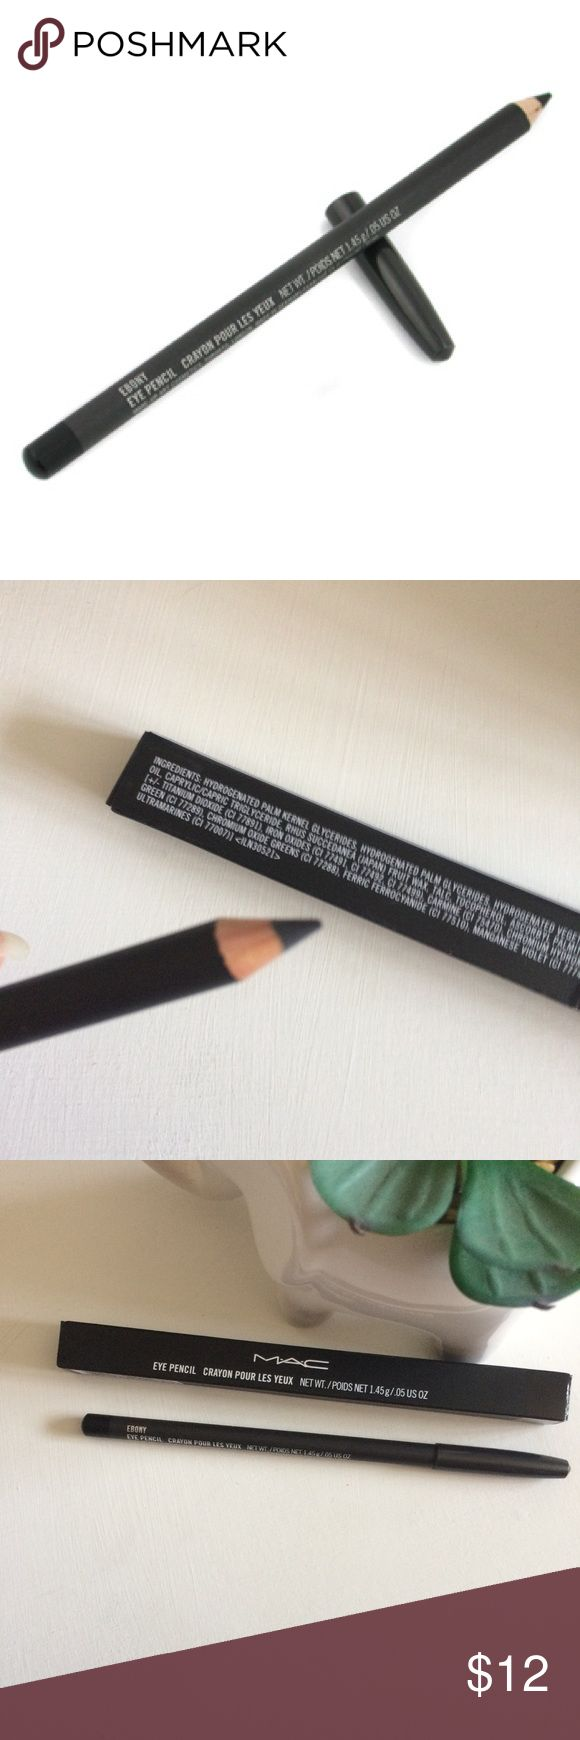 NIB MAC Cosmetics Ebony Eye Pencil   Black Liner New in box. Only swatched. Per reviews online it's a bit difficult to use. Beauty Tip: heat up eyeliner under blow dryer so it melts onto skin easily MAC Cosmetics Makeup Eyeliner